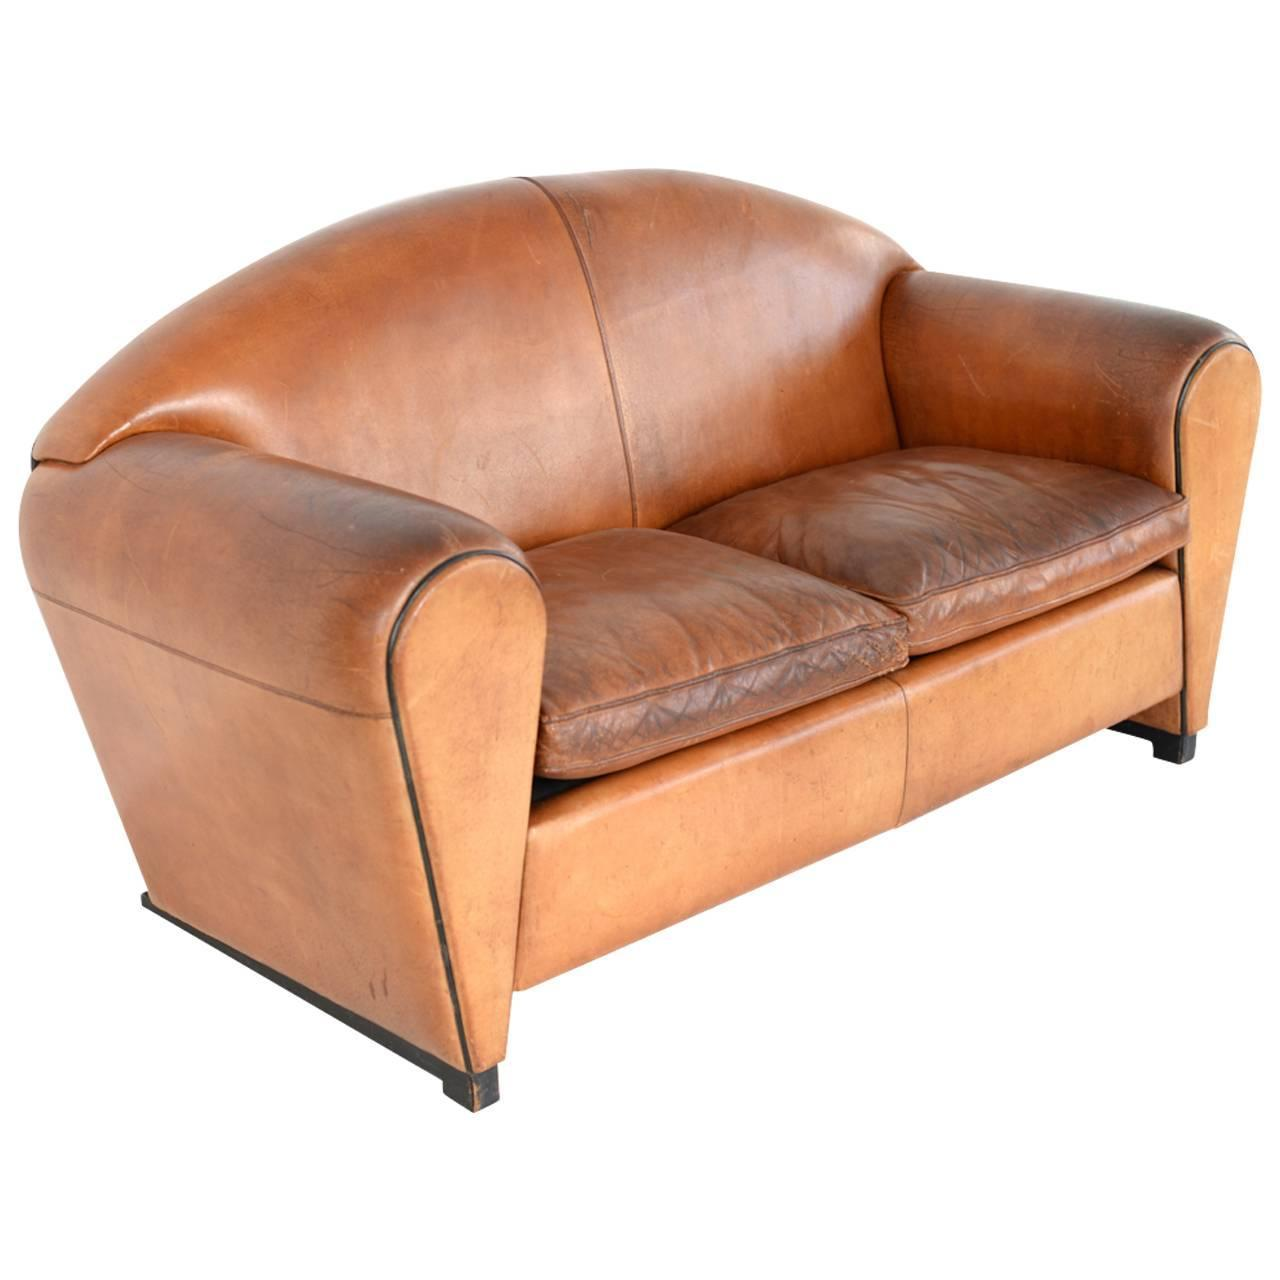 art deco cognac leather sofa at 1stdibs. Black Bedroom Furniture Sets. Home Design Ideas